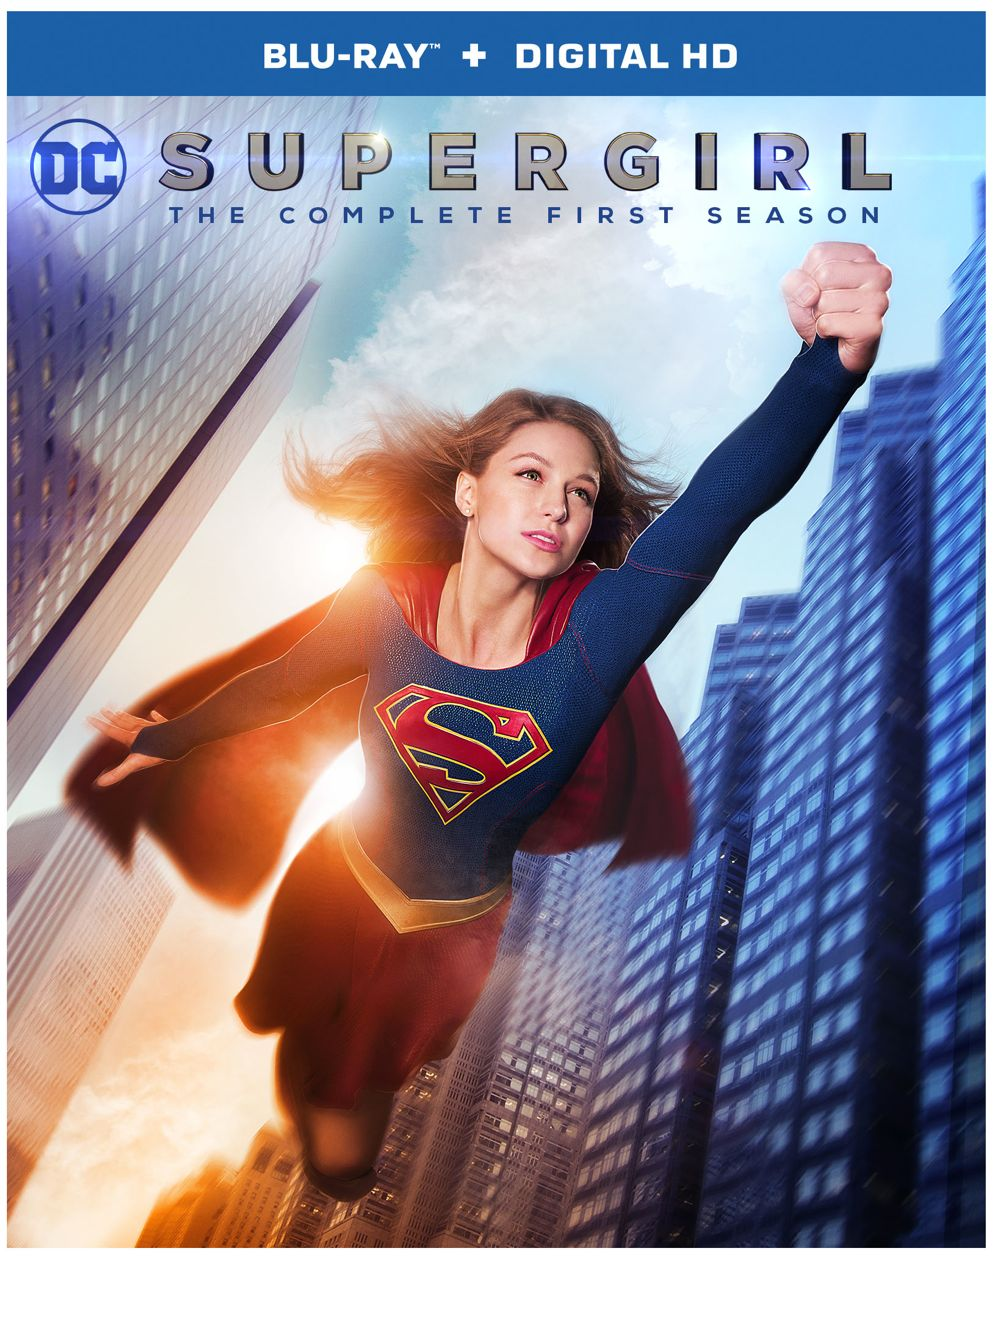 Supergirl Season 1 Bluray - 1